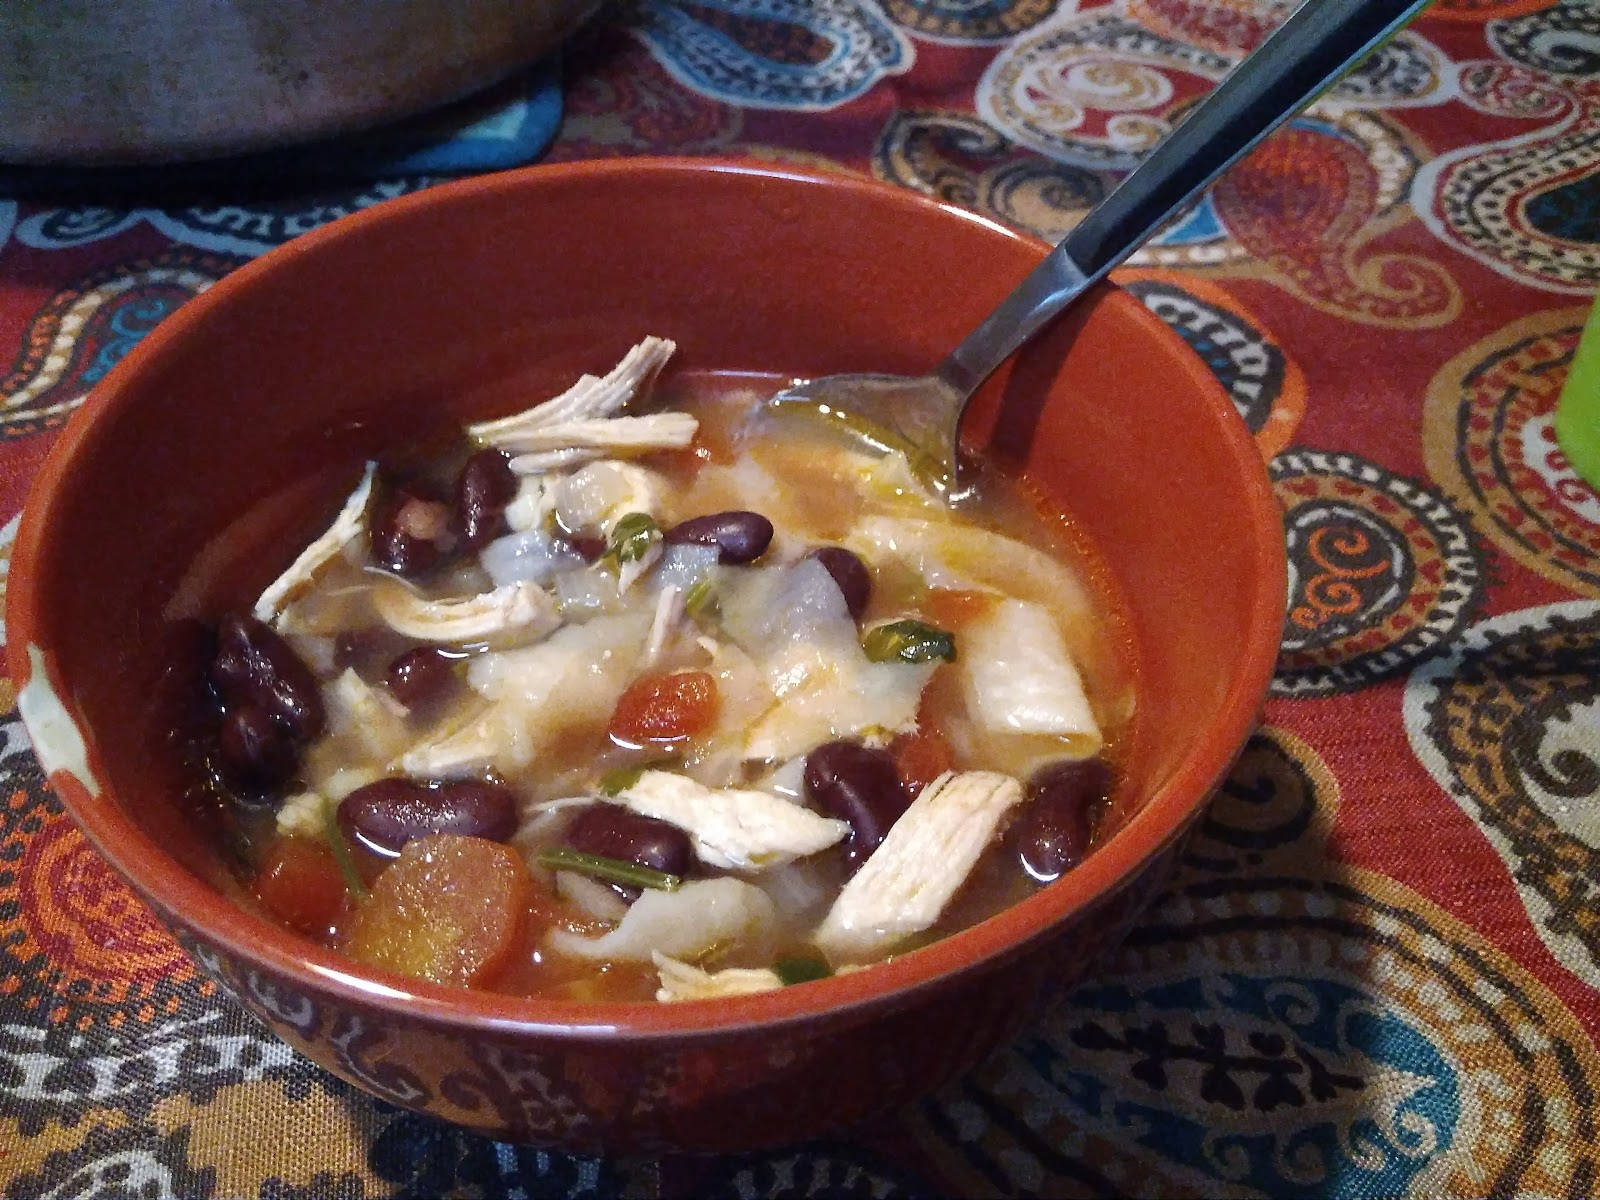 Foodies in a foreign land chicken tortilla soup 2 tbs oil 1 small onion diced 2 tbs garlic minced 1 2 green chilies seeds removed diced optional 6 cups water forumfinder Image collections